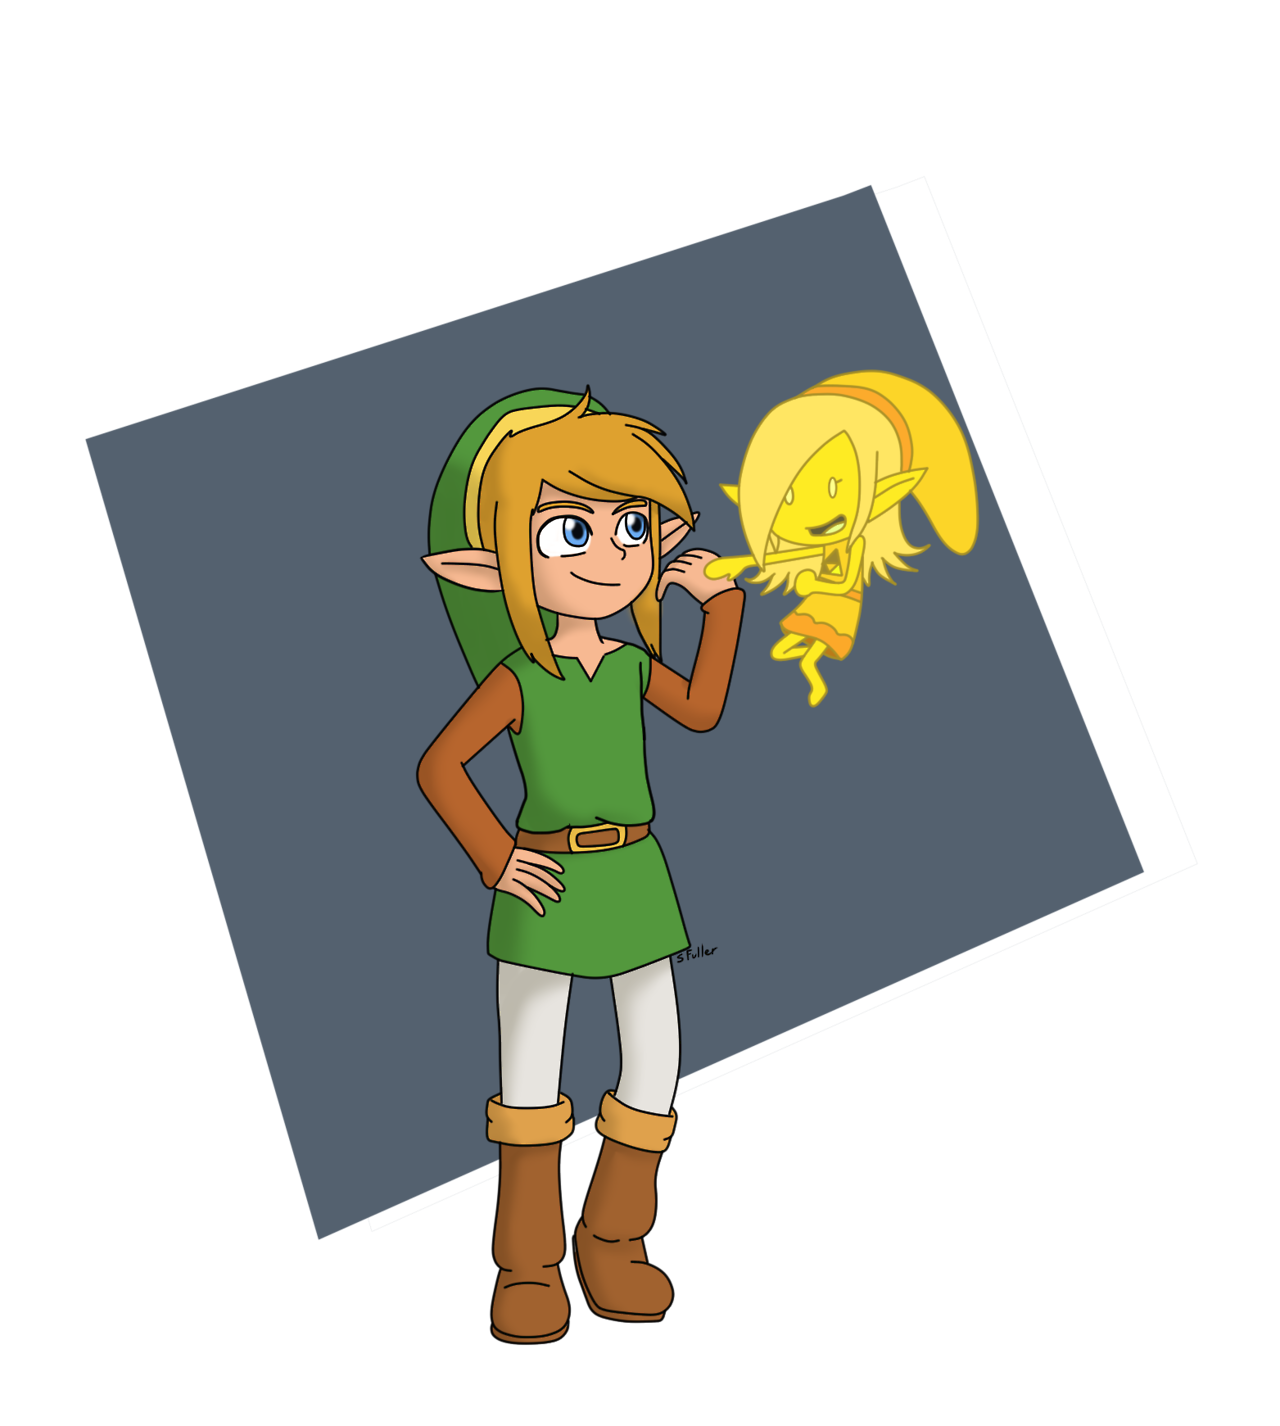 Triforce drawing animated